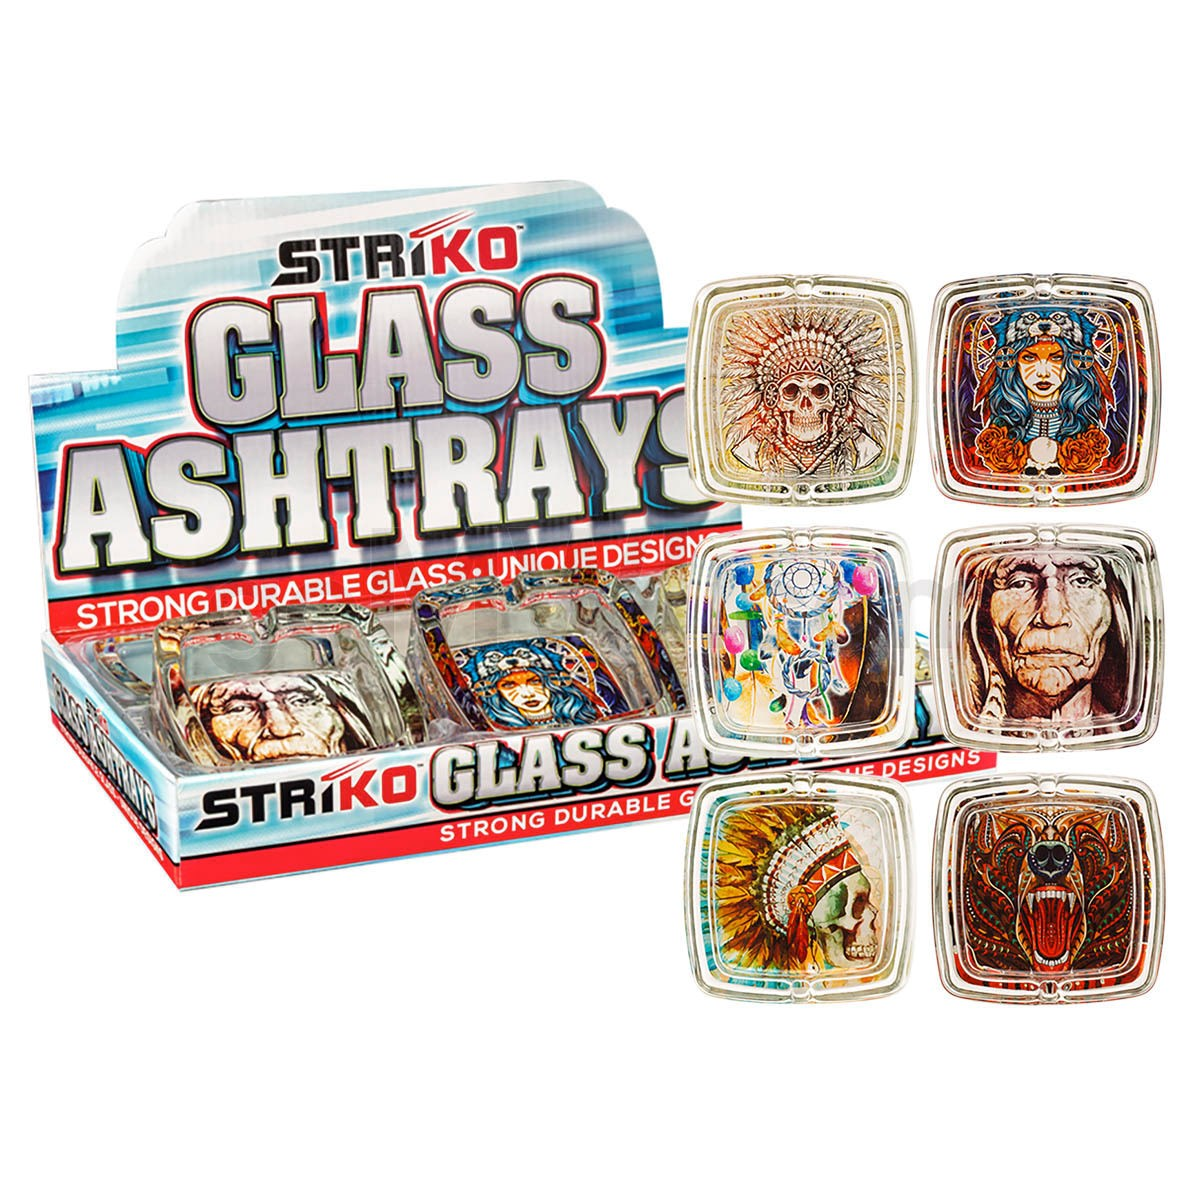 STRIKO ASHTRAYS 0701